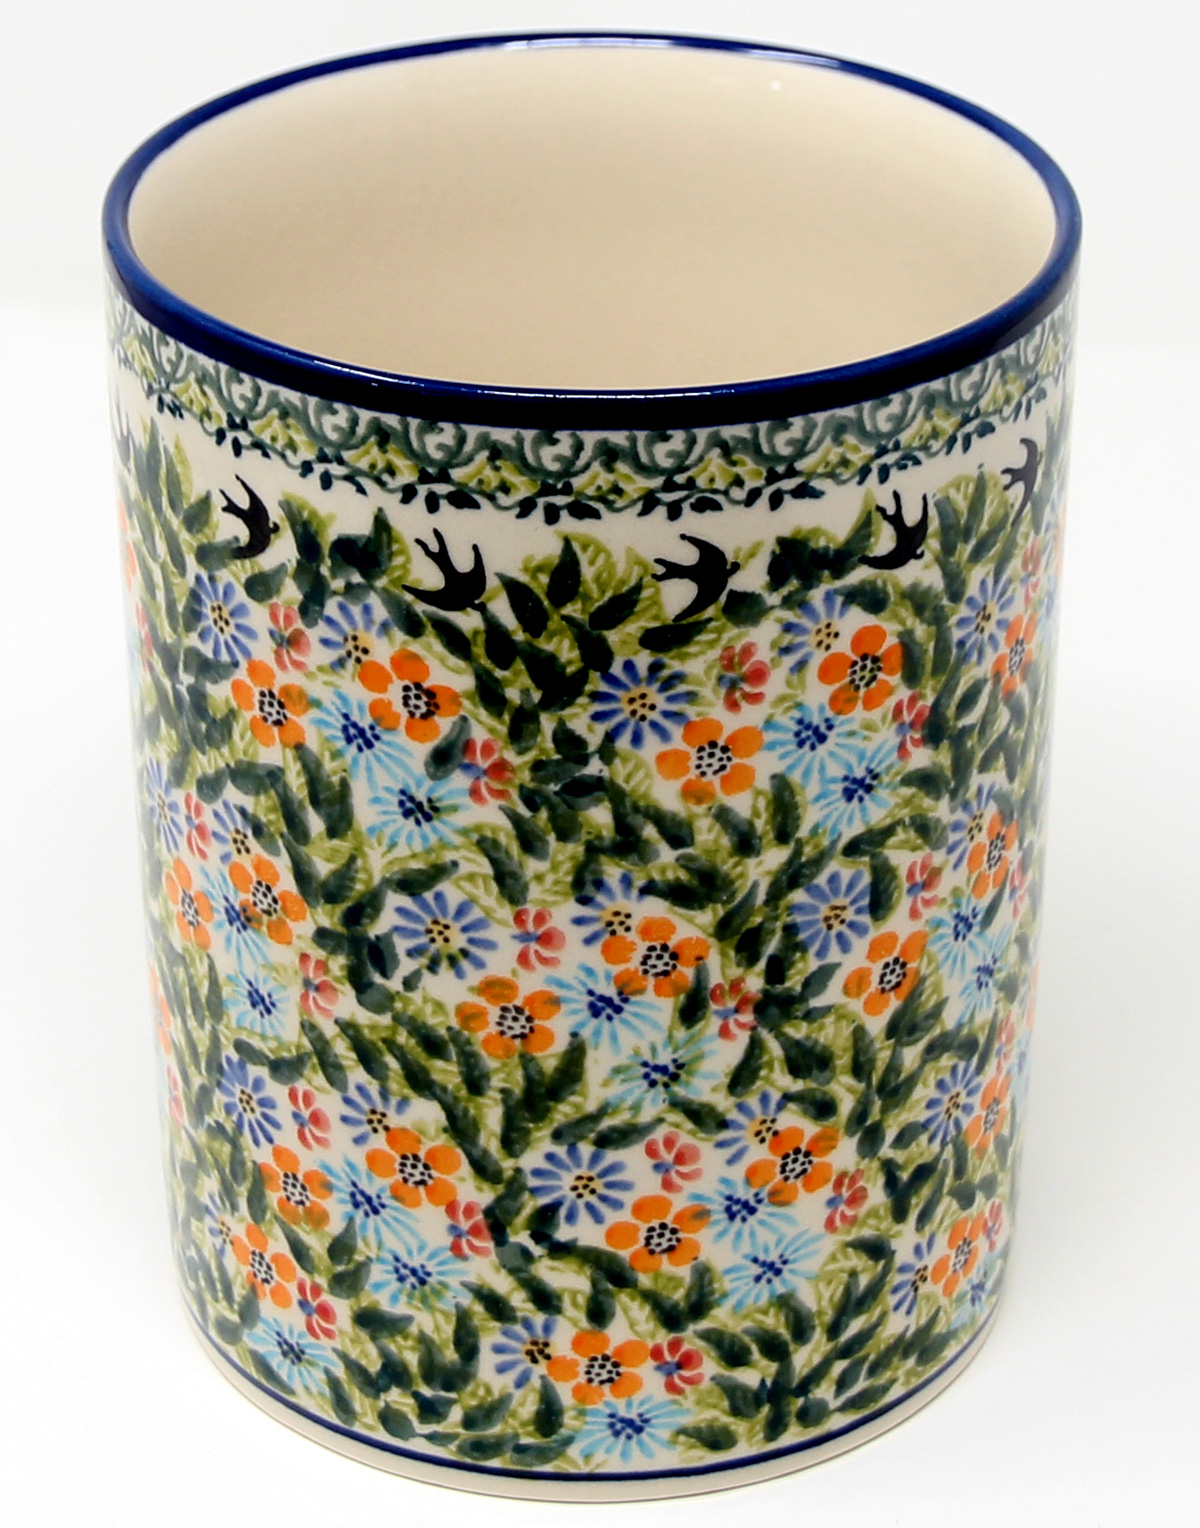 Utensil Holder, Polish Pottery from Zaklady Boleslawiec